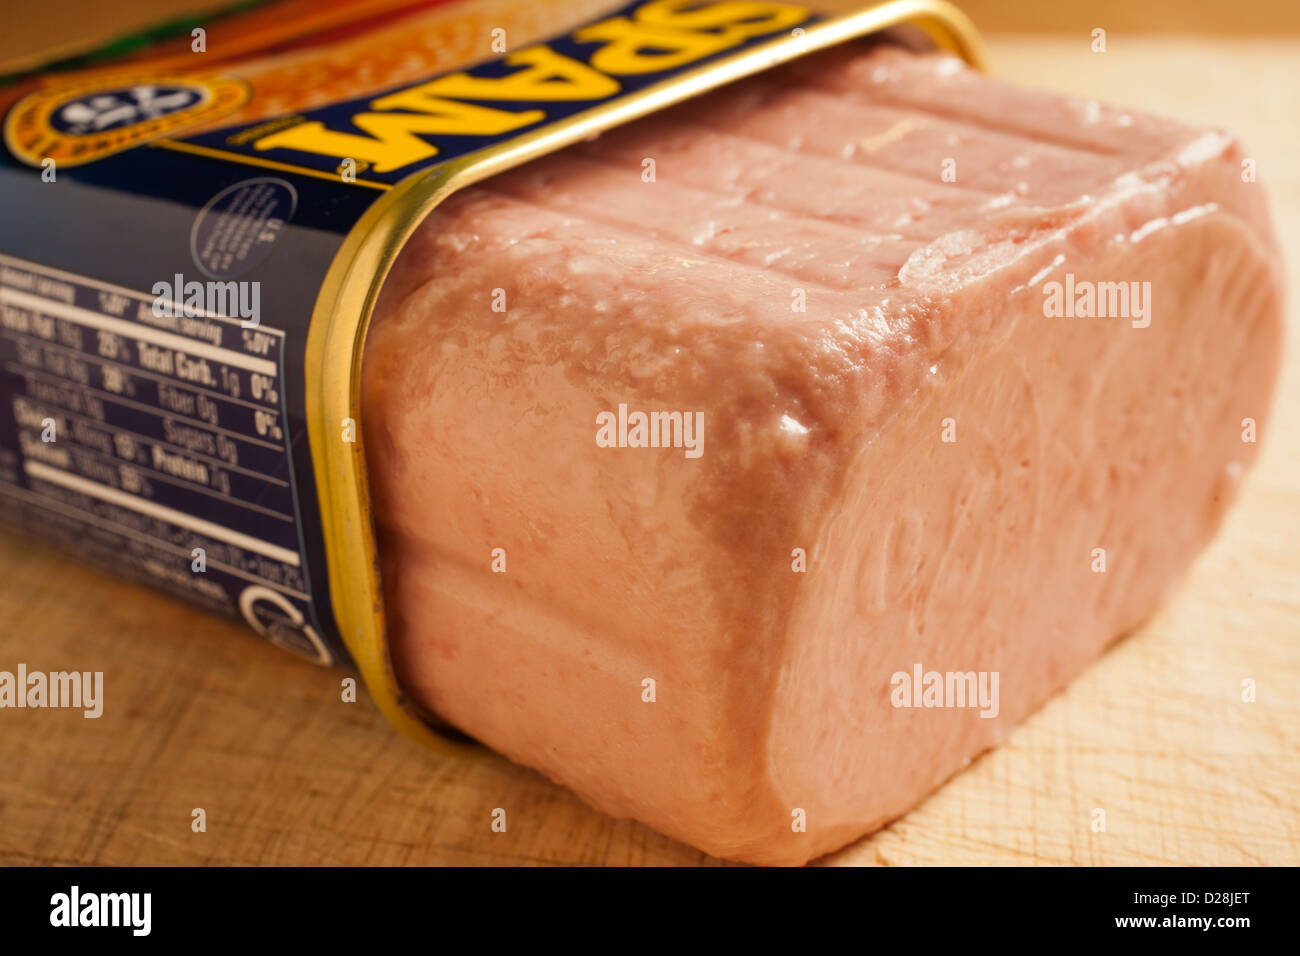 An open can of Spam showing the 75th anniversary imprint - Stock Image